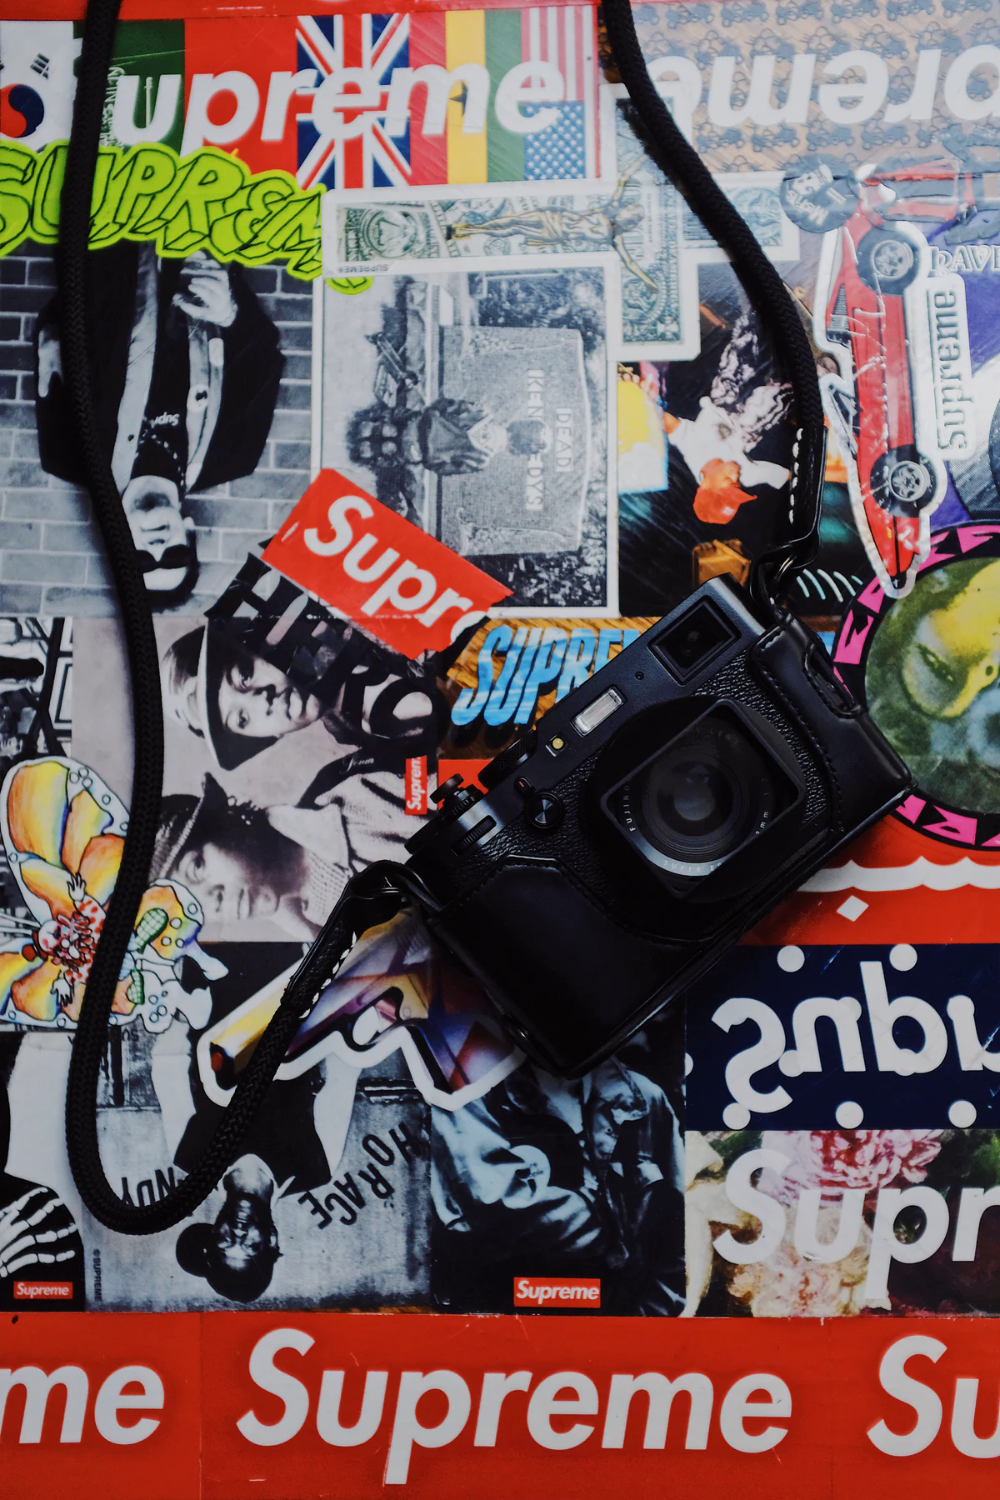 Art Pictures [HQ] Download Free Images on Unsplash in